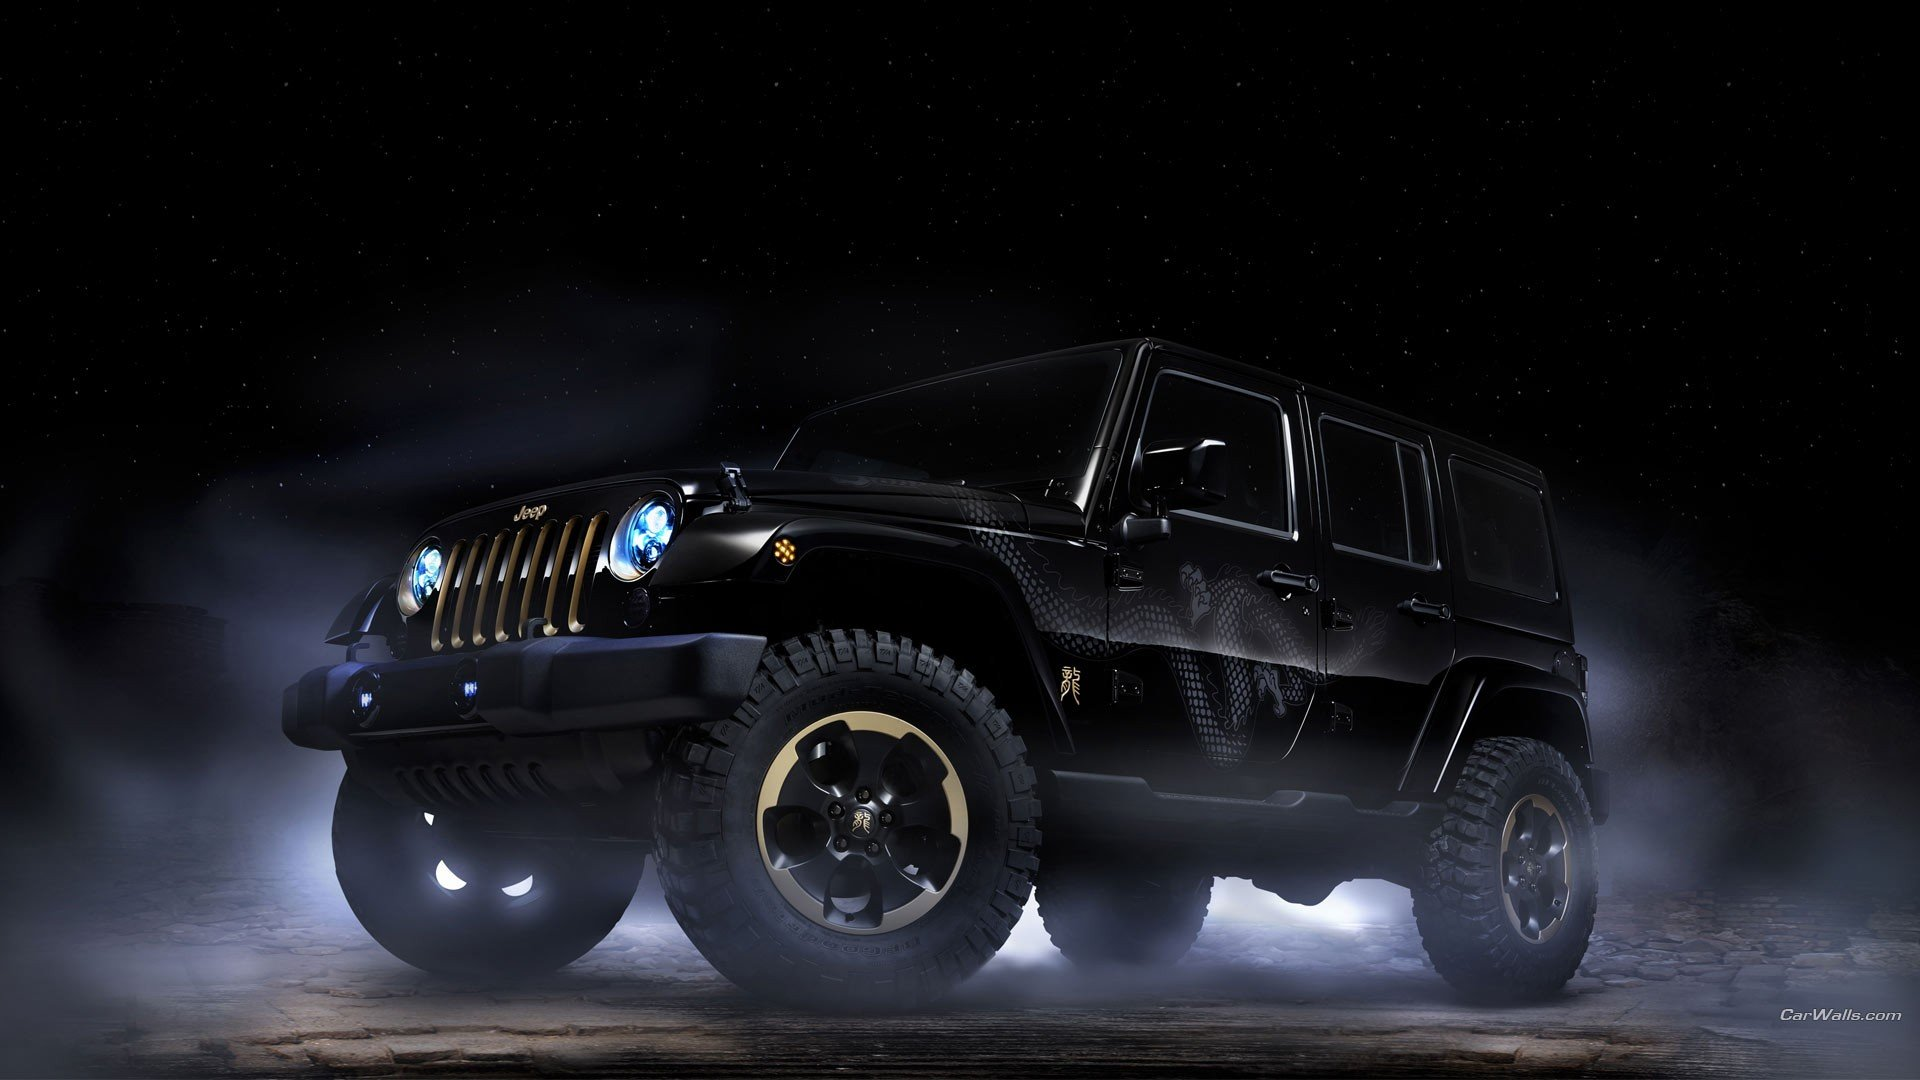 Jeep Wrangler wallpapers 1920x1080 Full